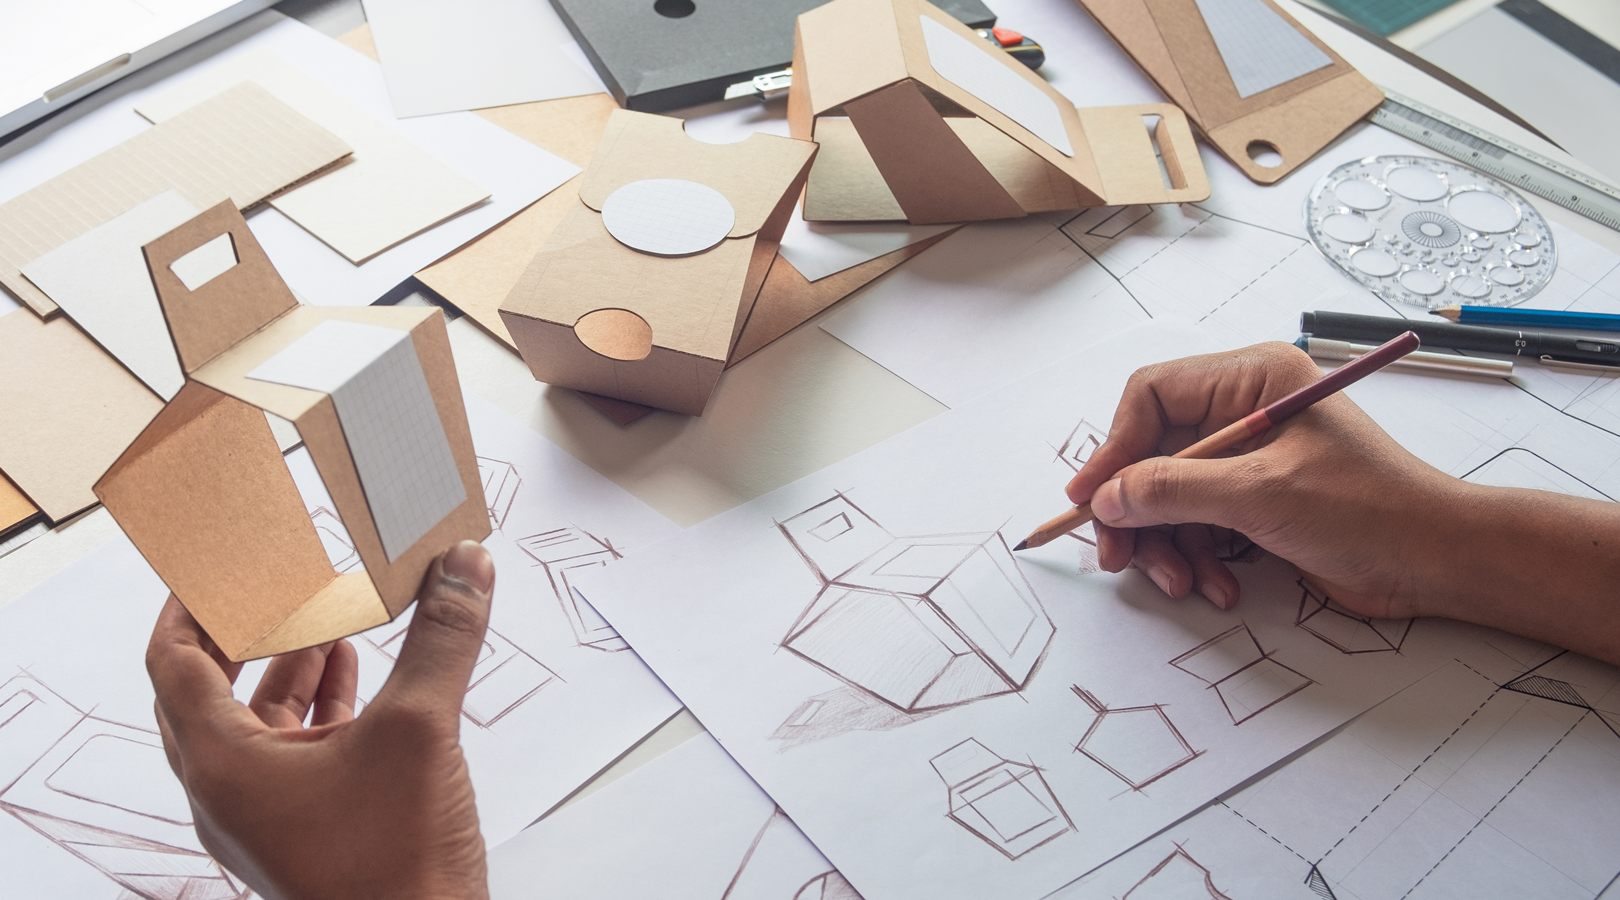 4 Tips To Design Awesome Custom Packaging for the Holidays